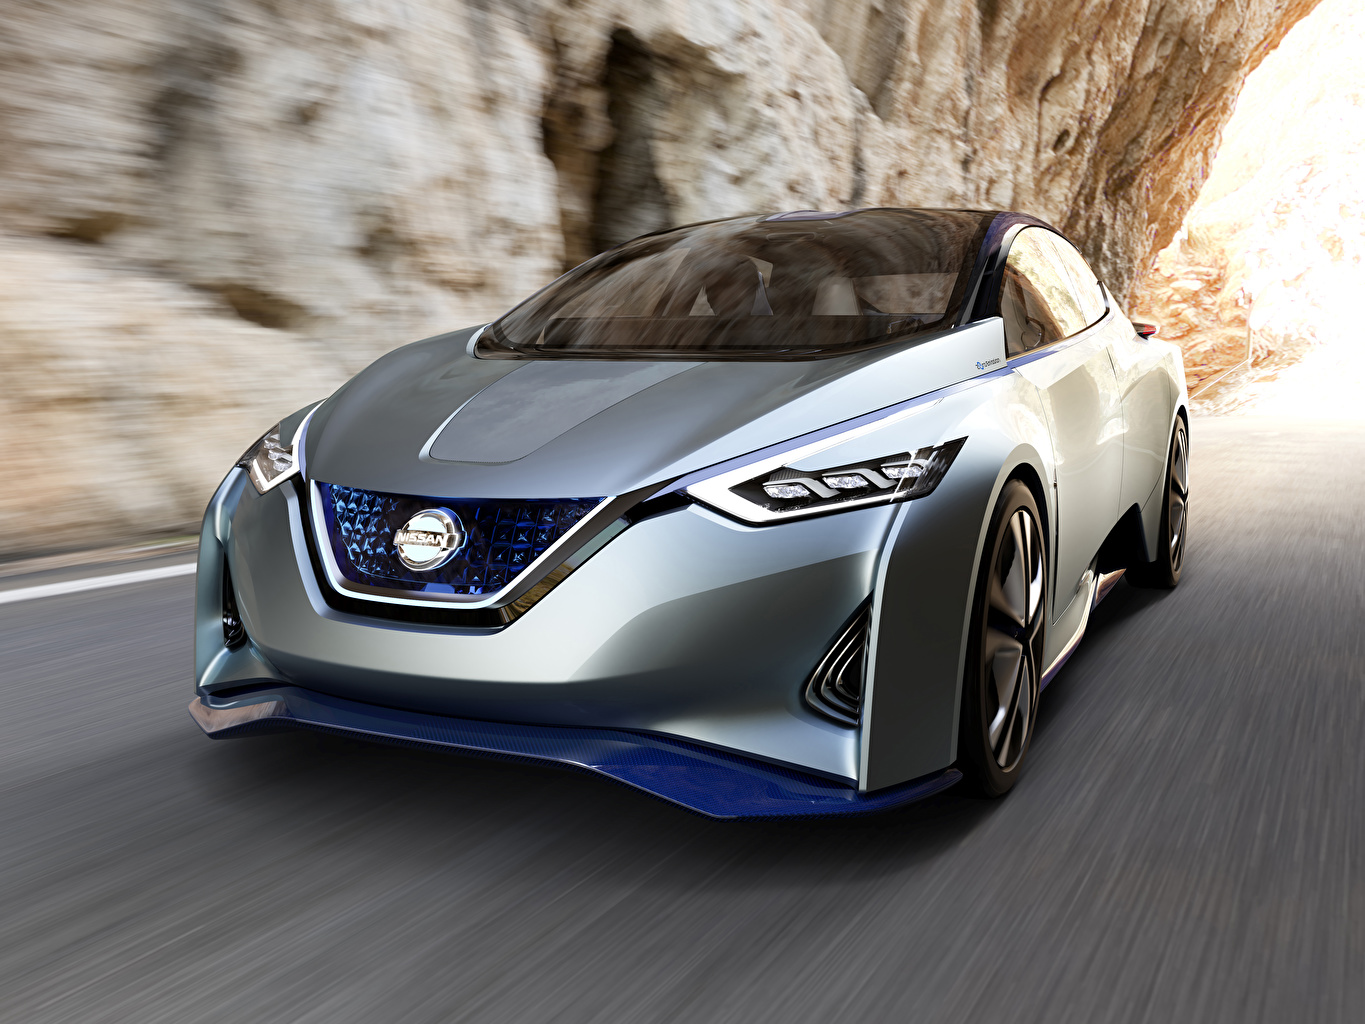 Pictures Nissan blurred background Silver color driving Metallic automobile Bokeh moving riding Motion at speed Cars auto